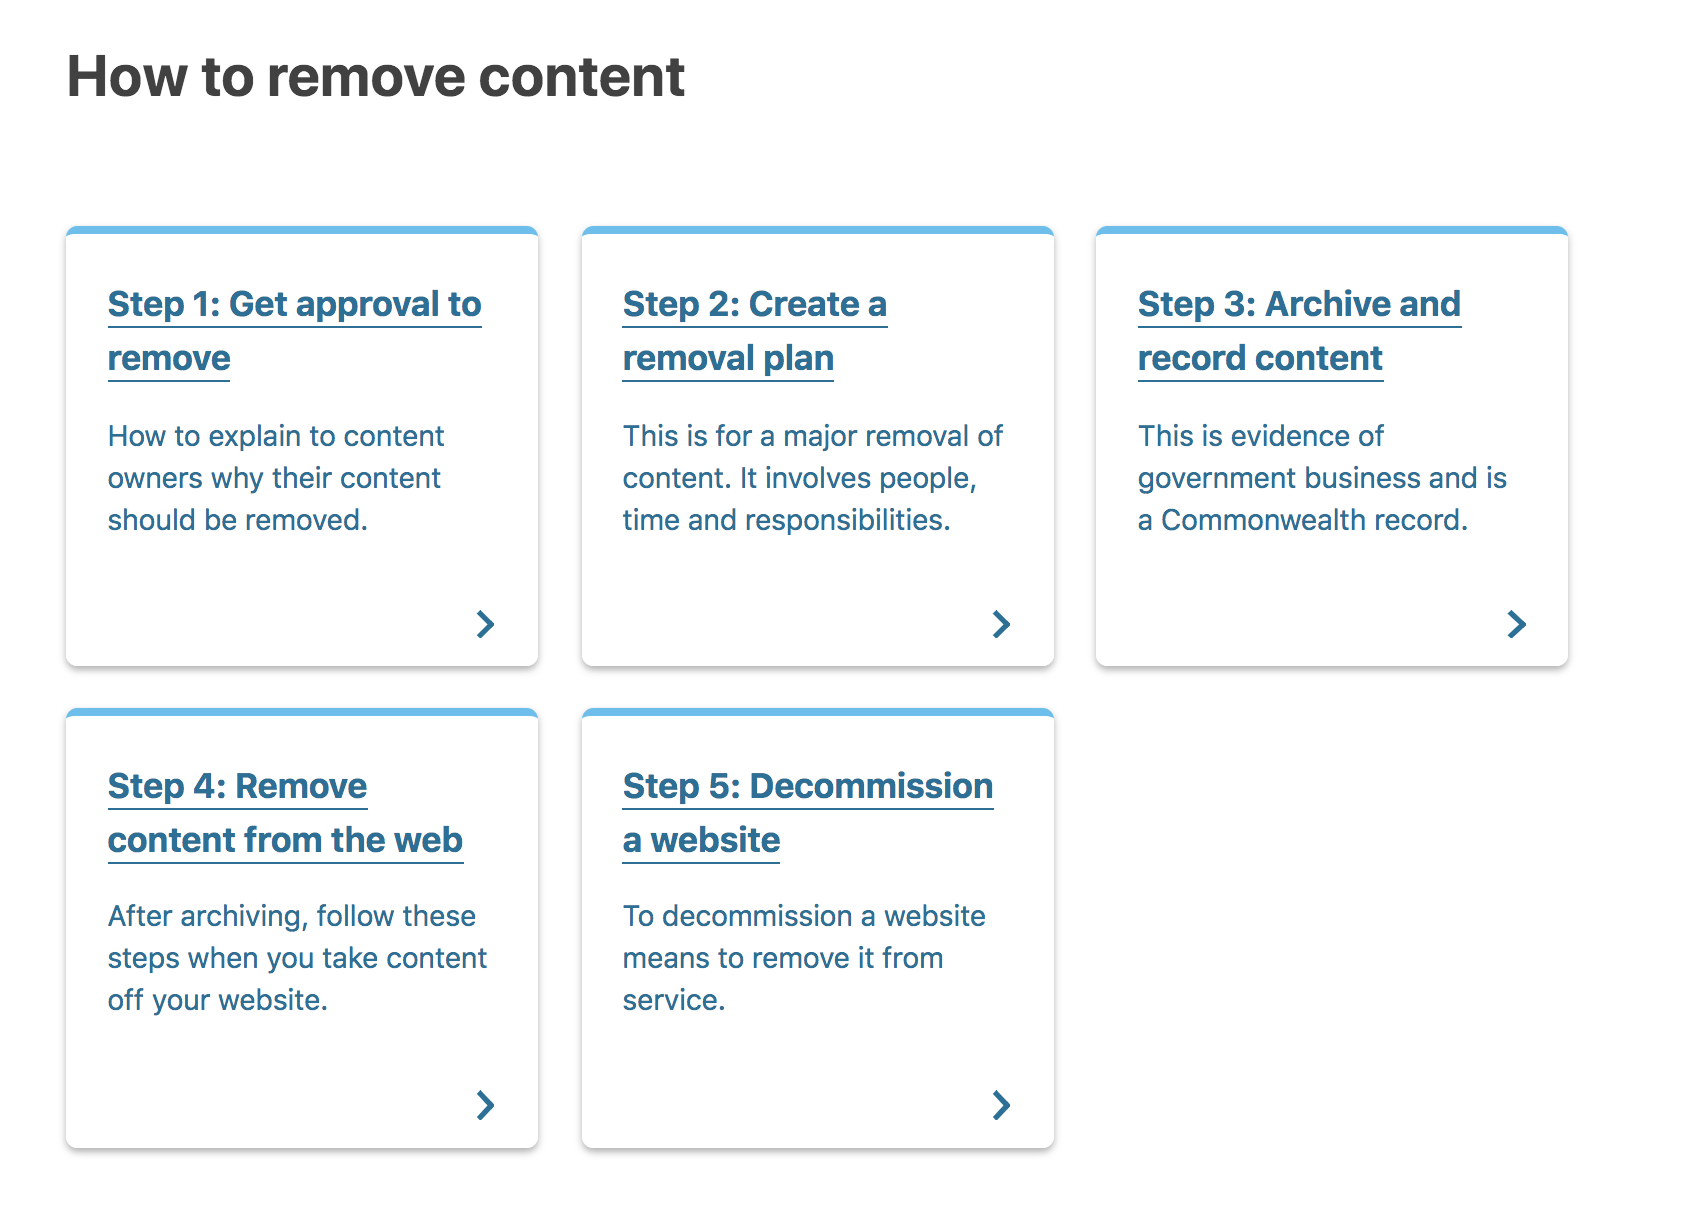 Example of procedures for removing content (source: Australian Government digital guide)